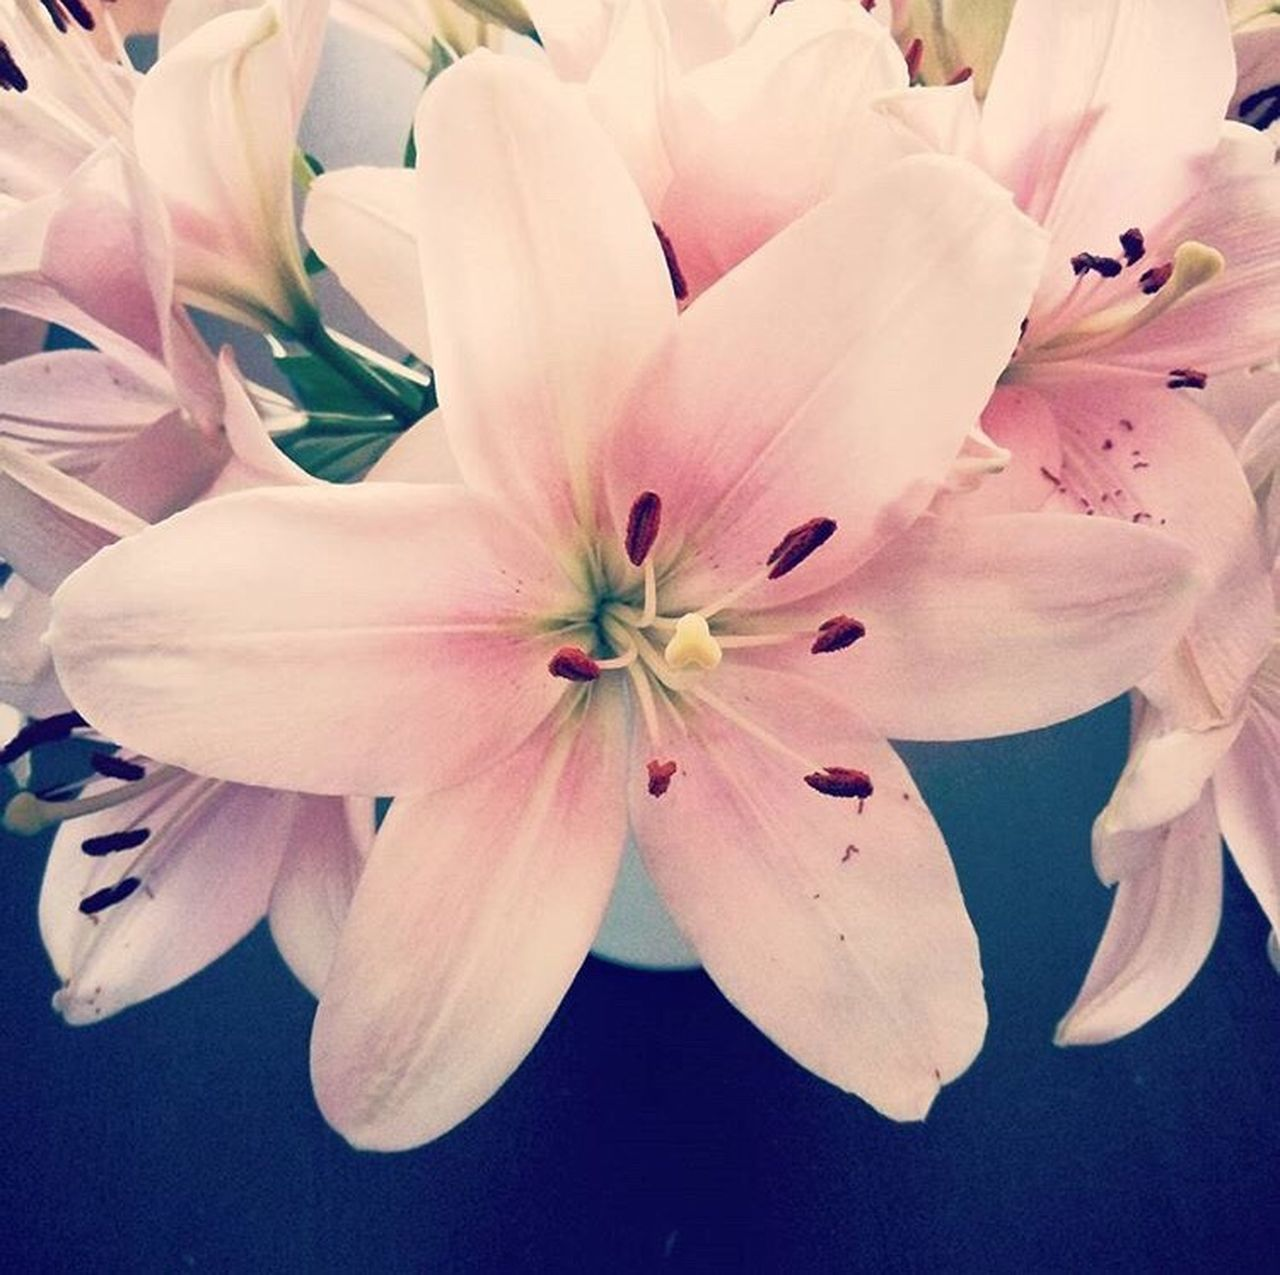 Flower Lilies Fragility Petal Beauty In Nature Flower Head Freshness Close-up Growth No People Blossom Pink Color Feminity Flora